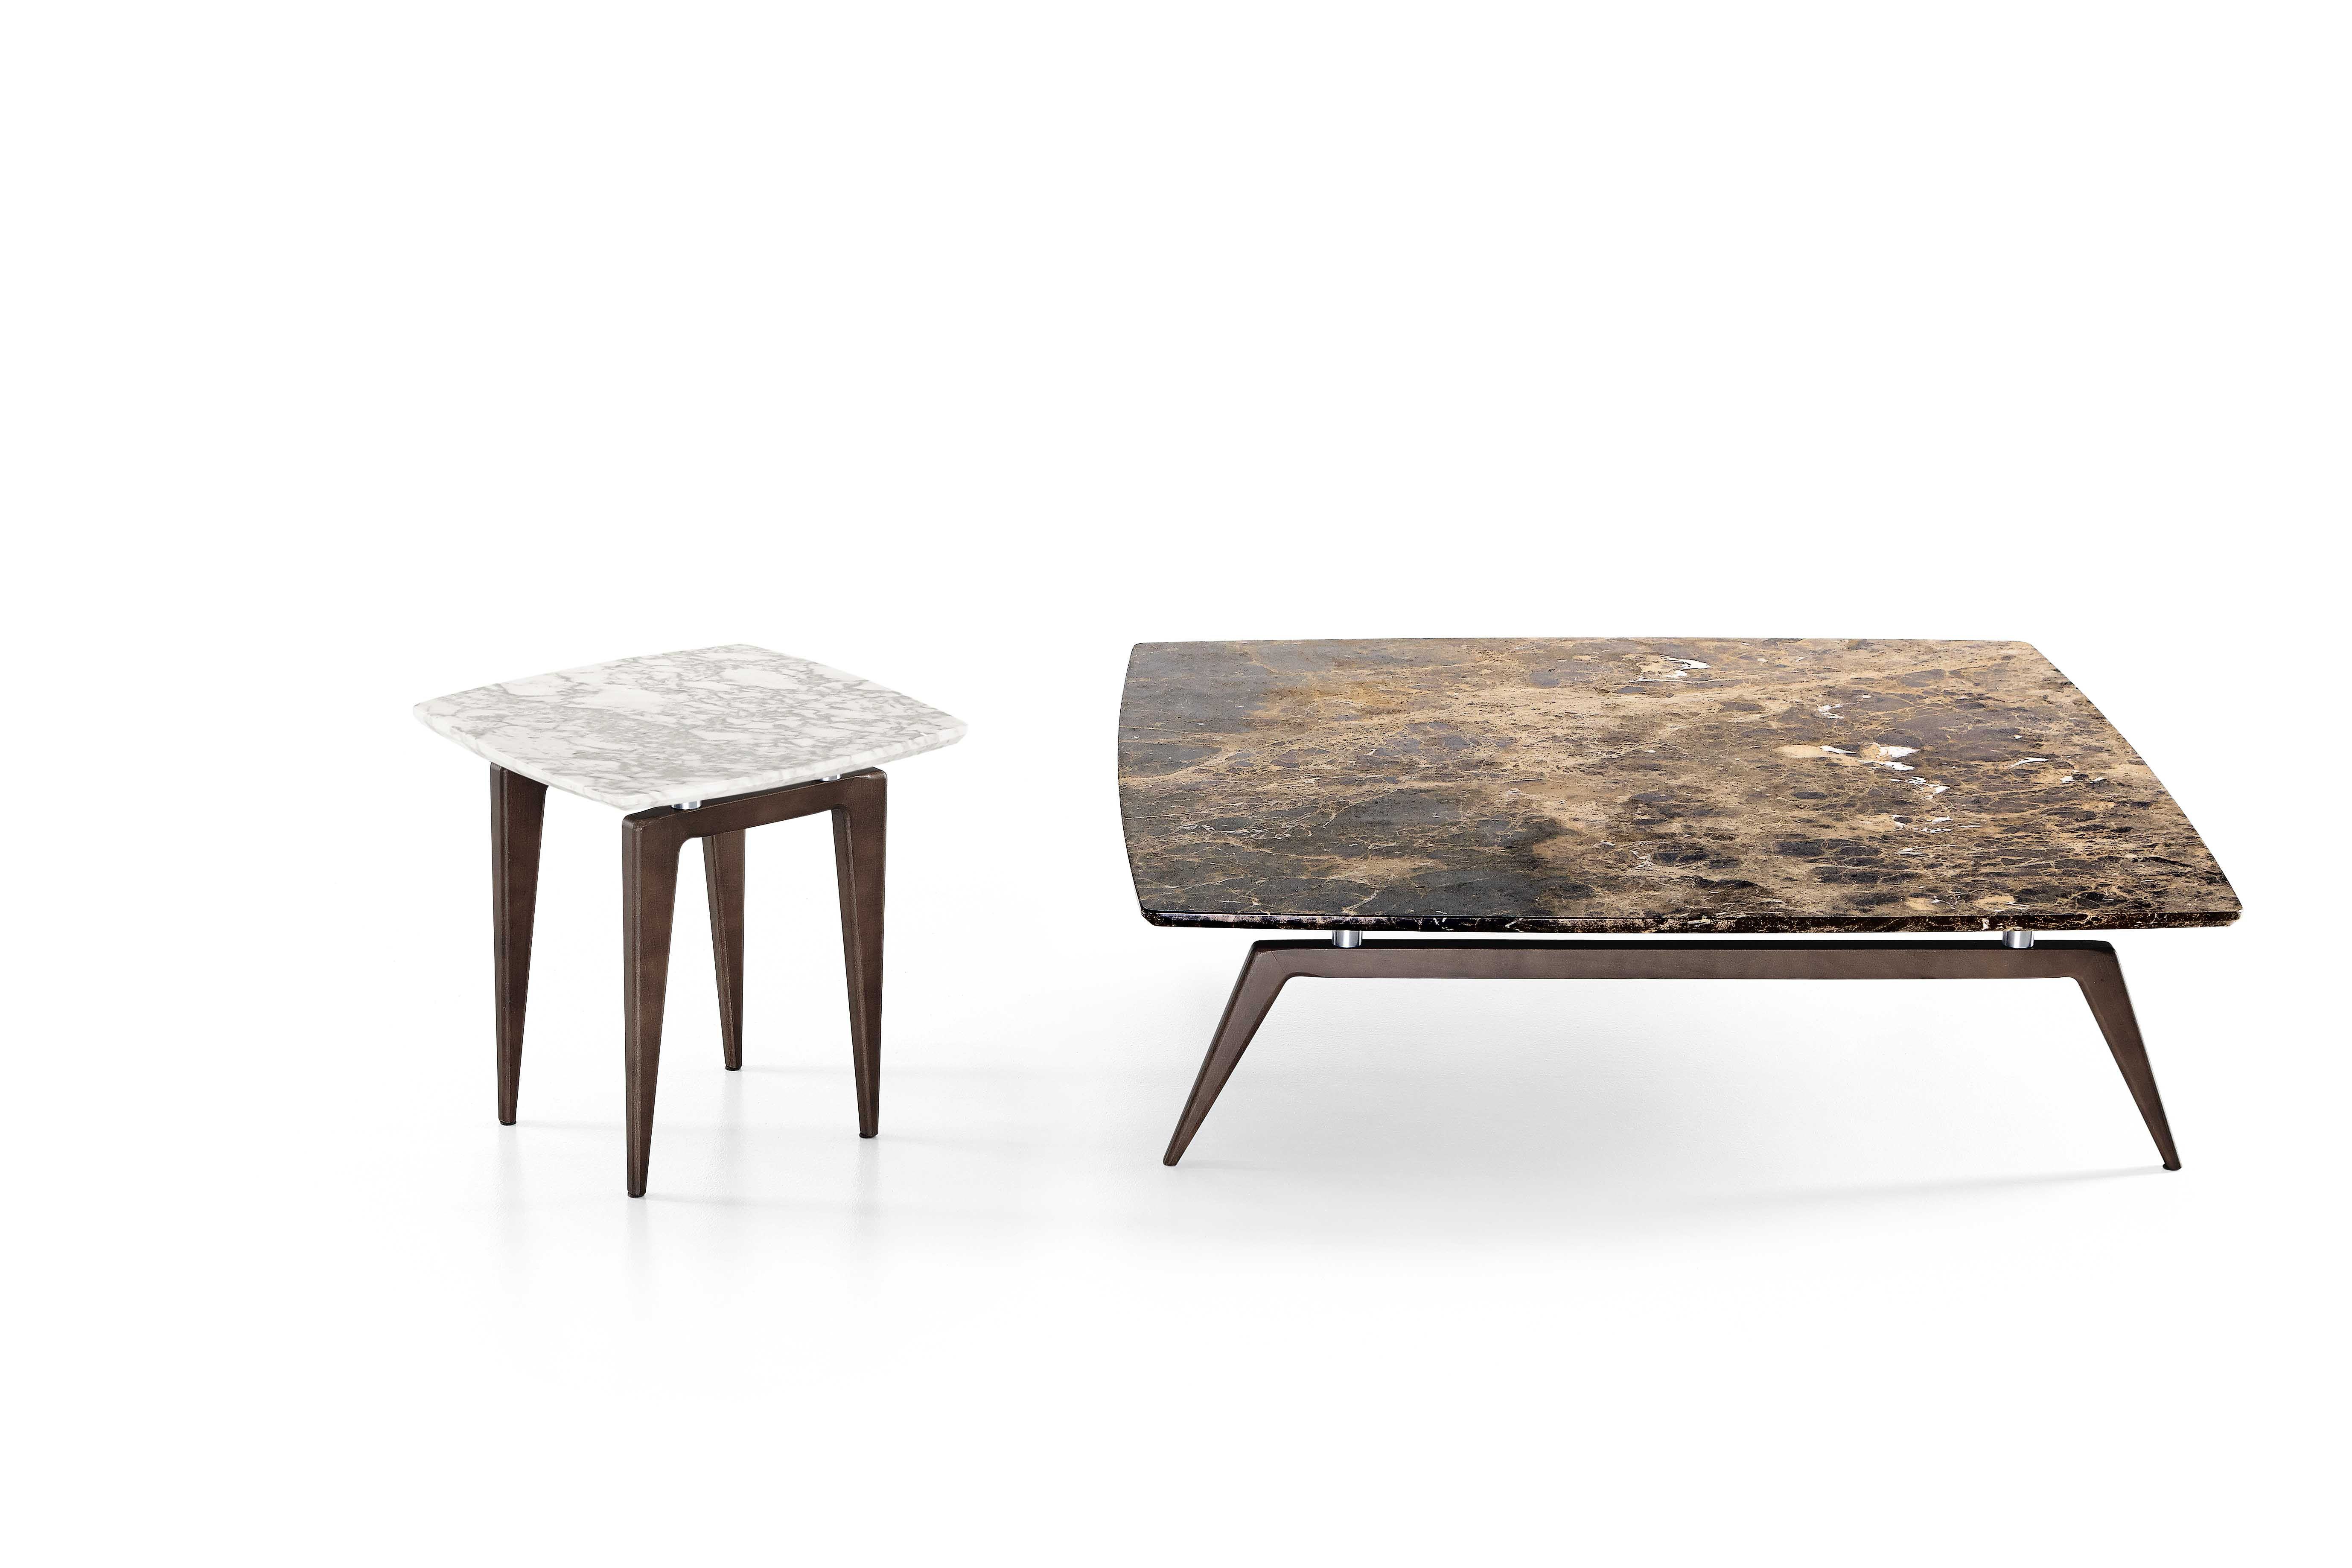 Small Table With Plane In Dark Emperor Marble Coffee Table 40x40 With Plane In White